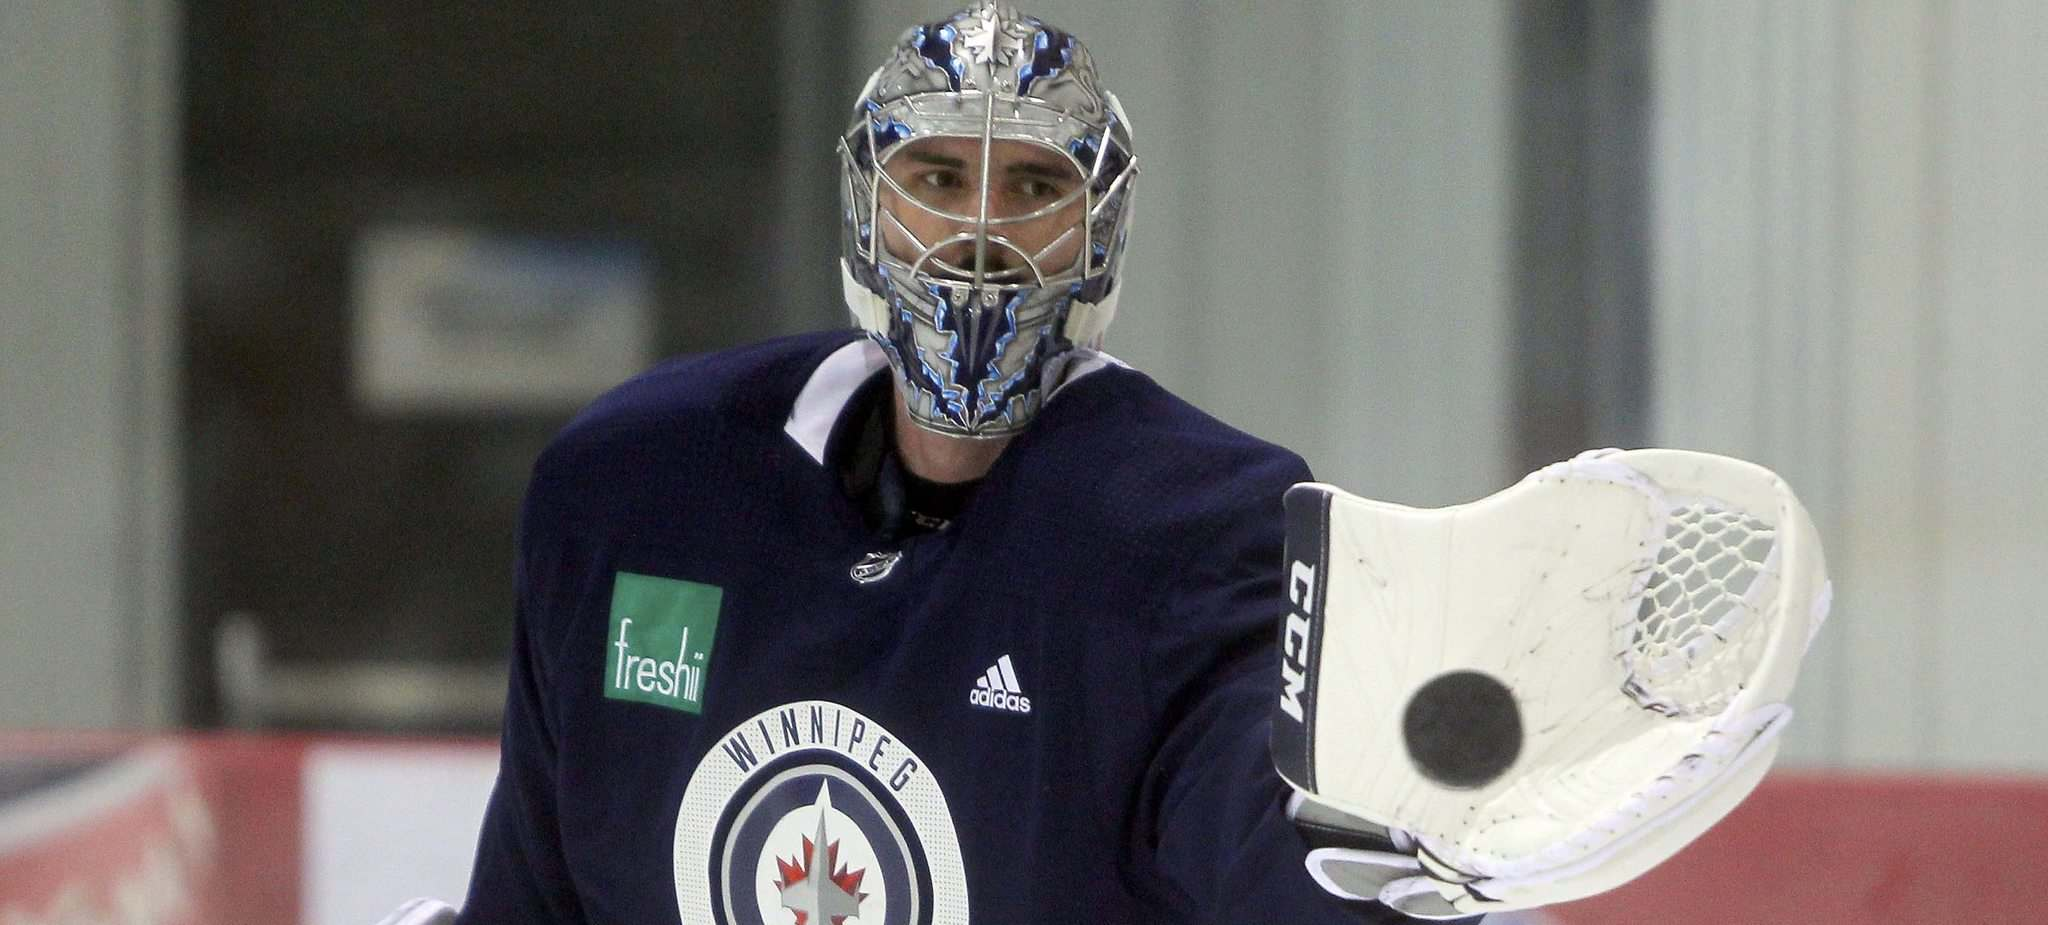 BORIS MINKEVICH / WINNIPEG FREE PRESS</p><p>Winnipeg Jets goalie Connor Hellebuyck surveys the Bell MTS Iceplex during practice Friday. He'll start in net for one of the two games against the St. Louis Blues this weekend, while Steve Mason gets the nod from coach Paul Maurice in the other contest.</p></p>